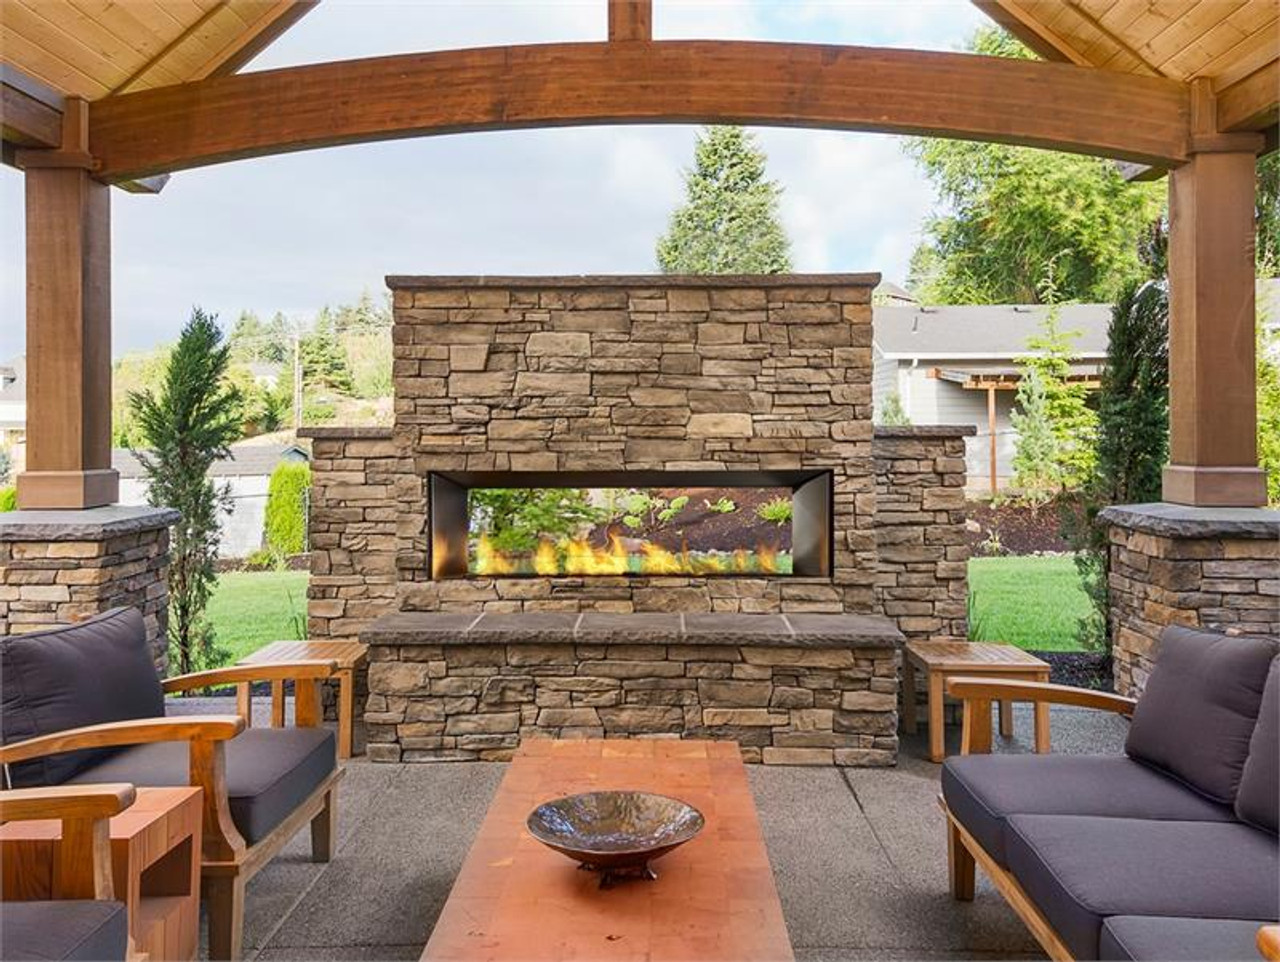 "HZO60 60"" Outdoor Gas Fireplace"